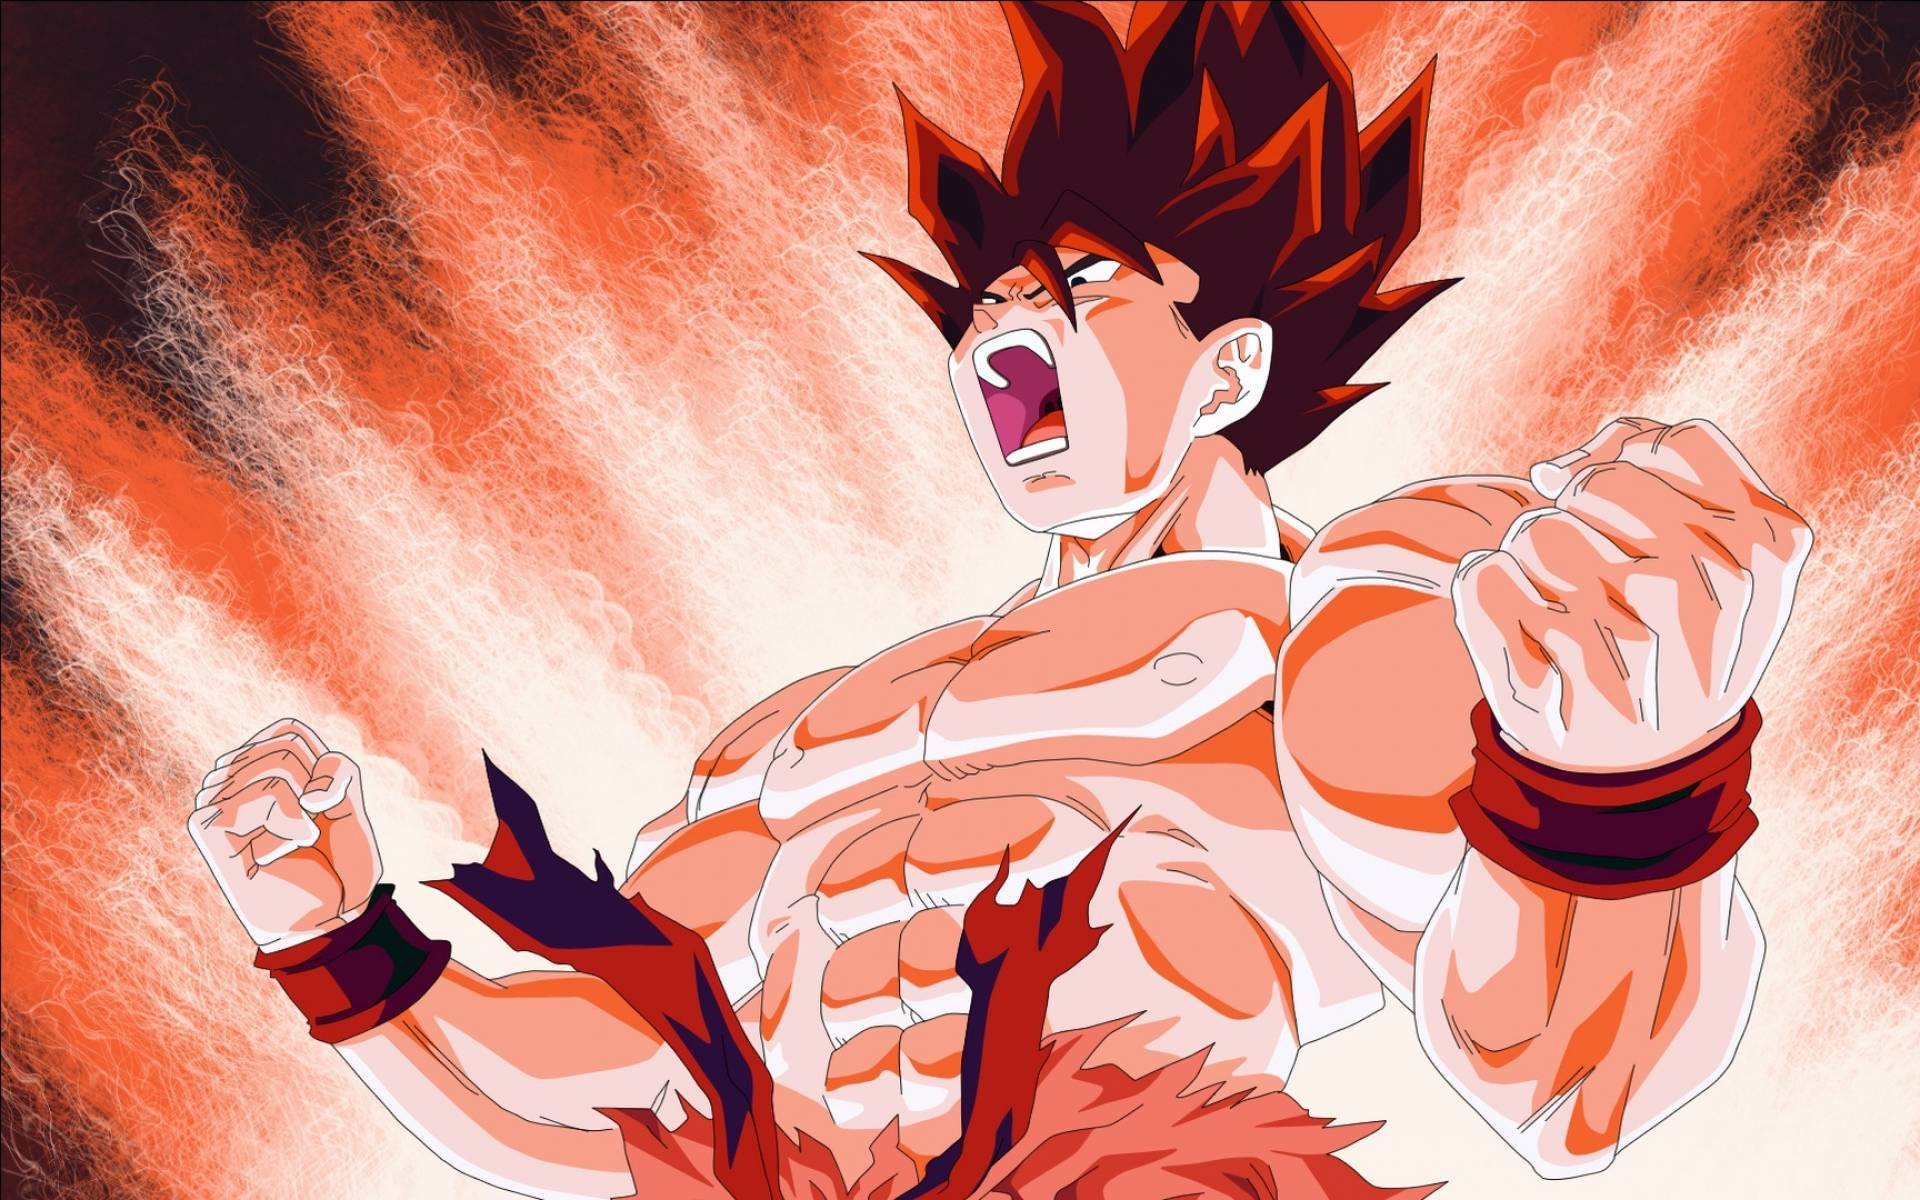 Dragon Ball Z Goku Wallpaper HD 14268 Full HD Wallpaper Desktop ...